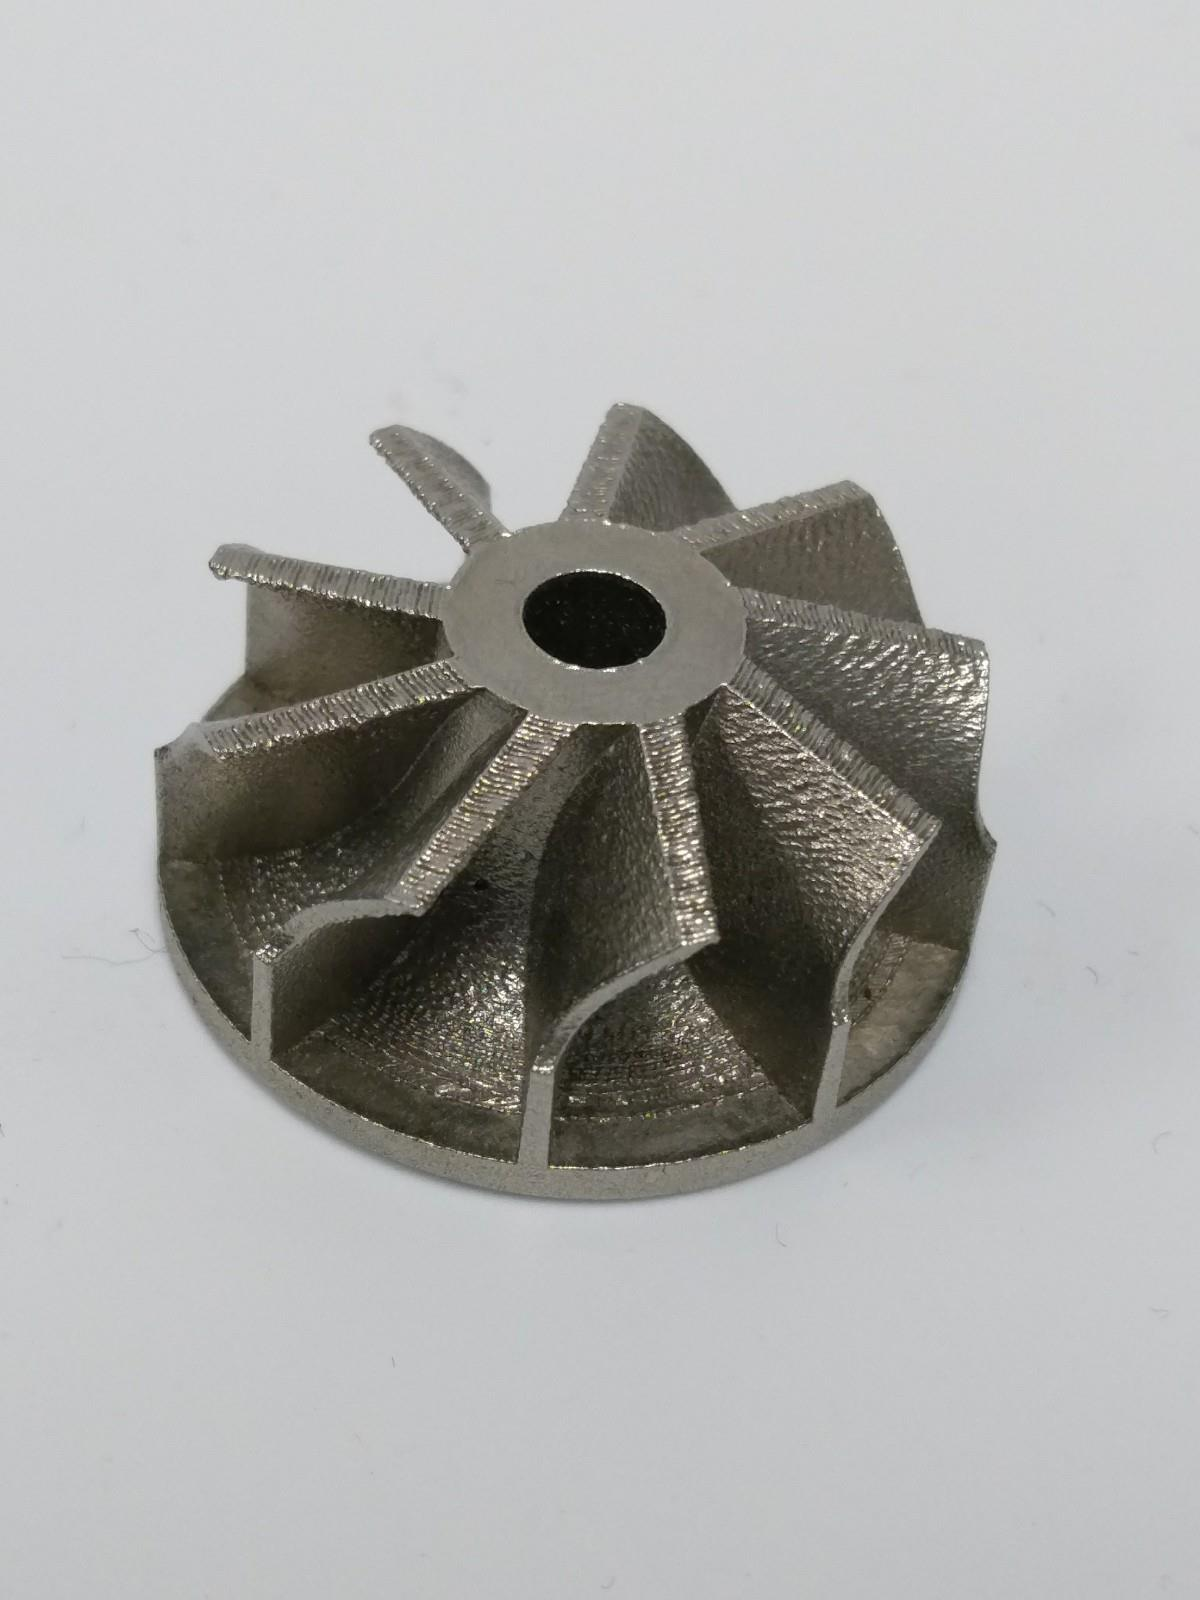 3d printed metal fan